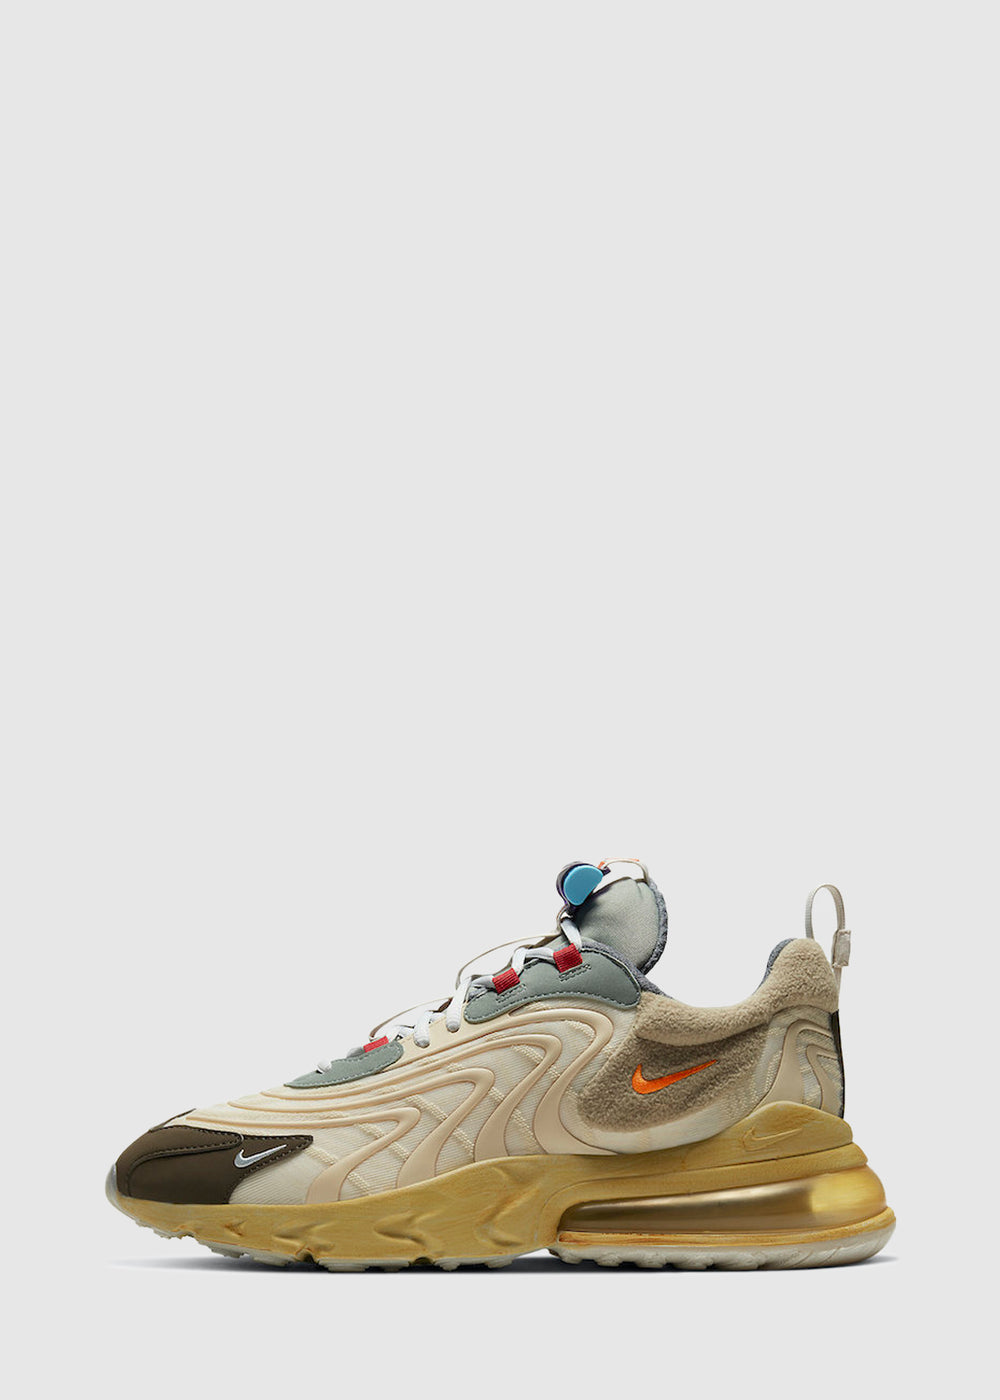 nike-x-travis-scott-air-max-270-cactus-trails-cream-1